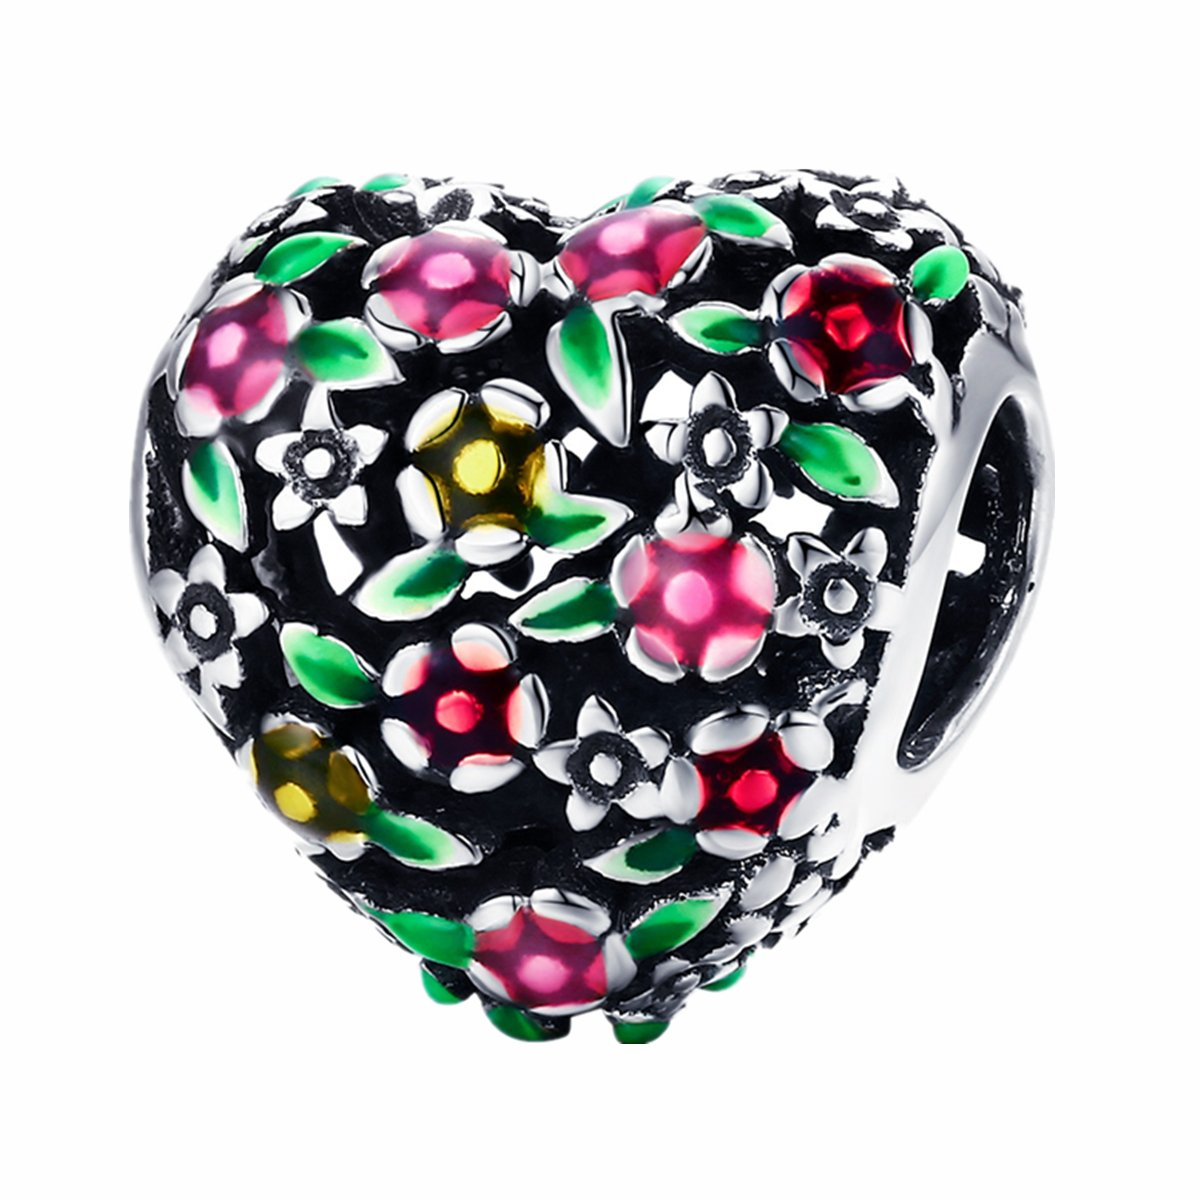 BAMOER 925 Sterling Silver Heart Charm Bead Love Charm Fit for Snake Chain Bracelet Spring Flower Charm